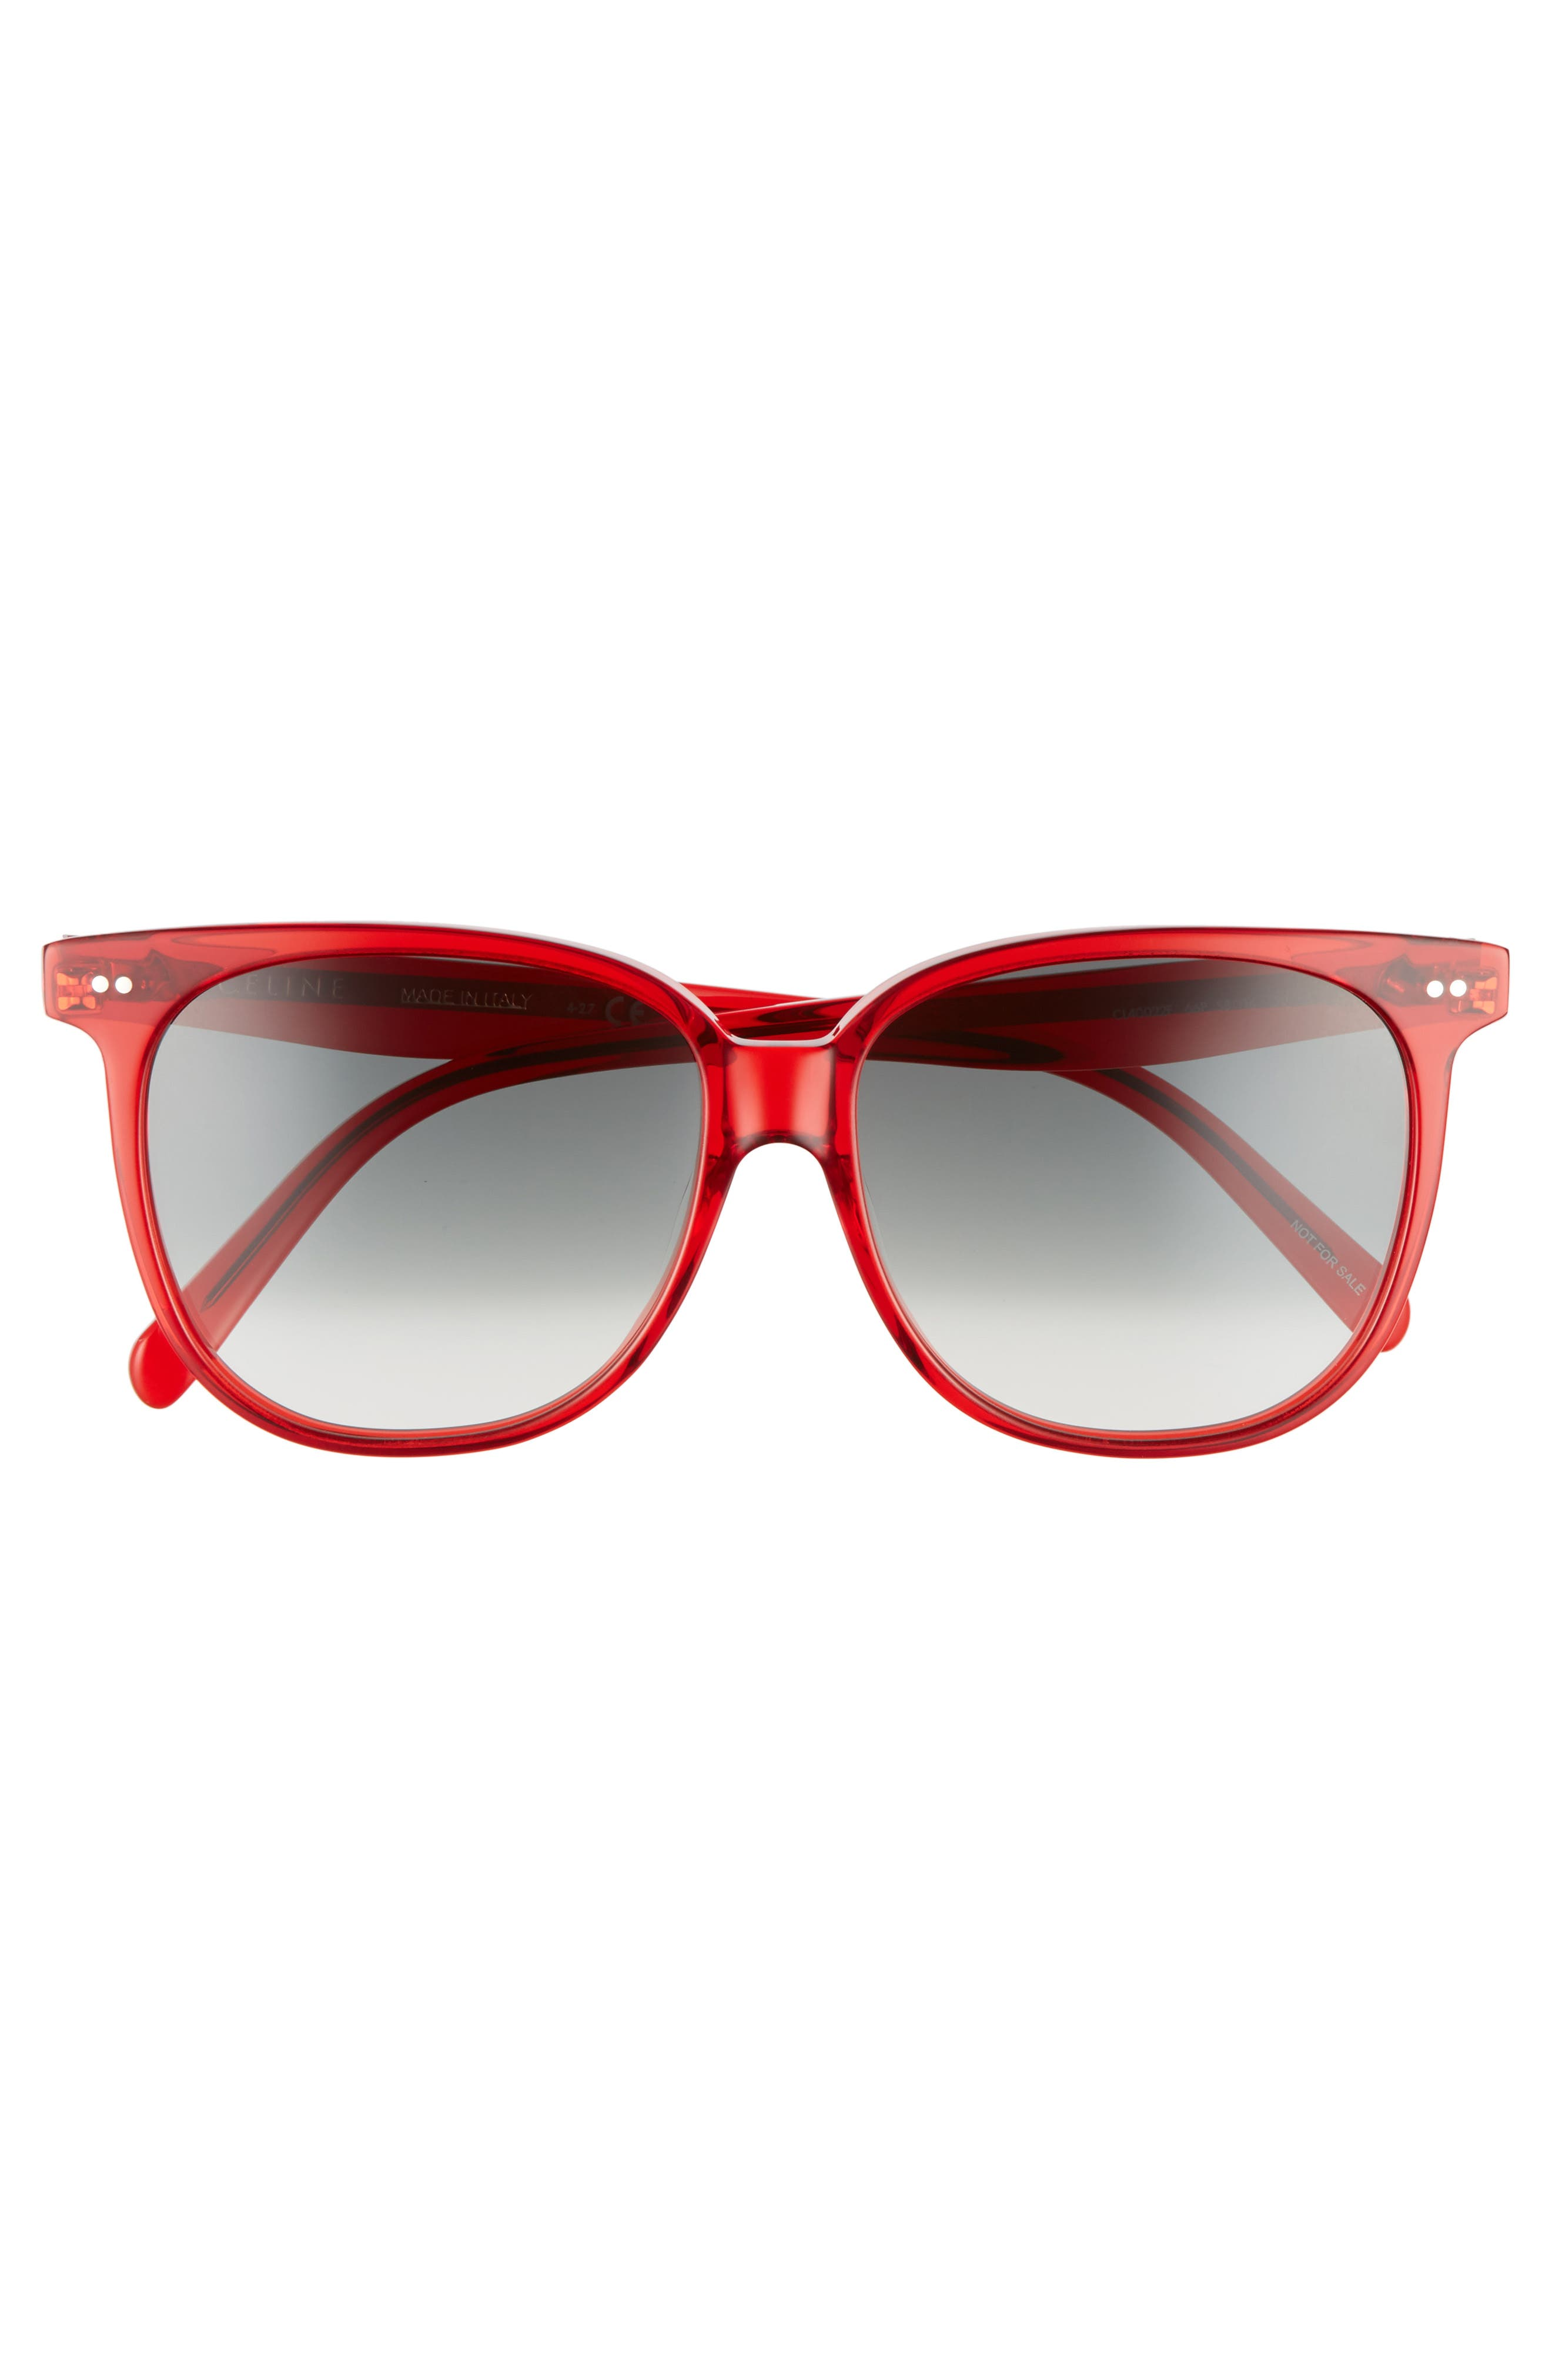 Special Fit 58mm Square Sunglasses,                             Alternate thumbnail 3, color,                             Red/ Green